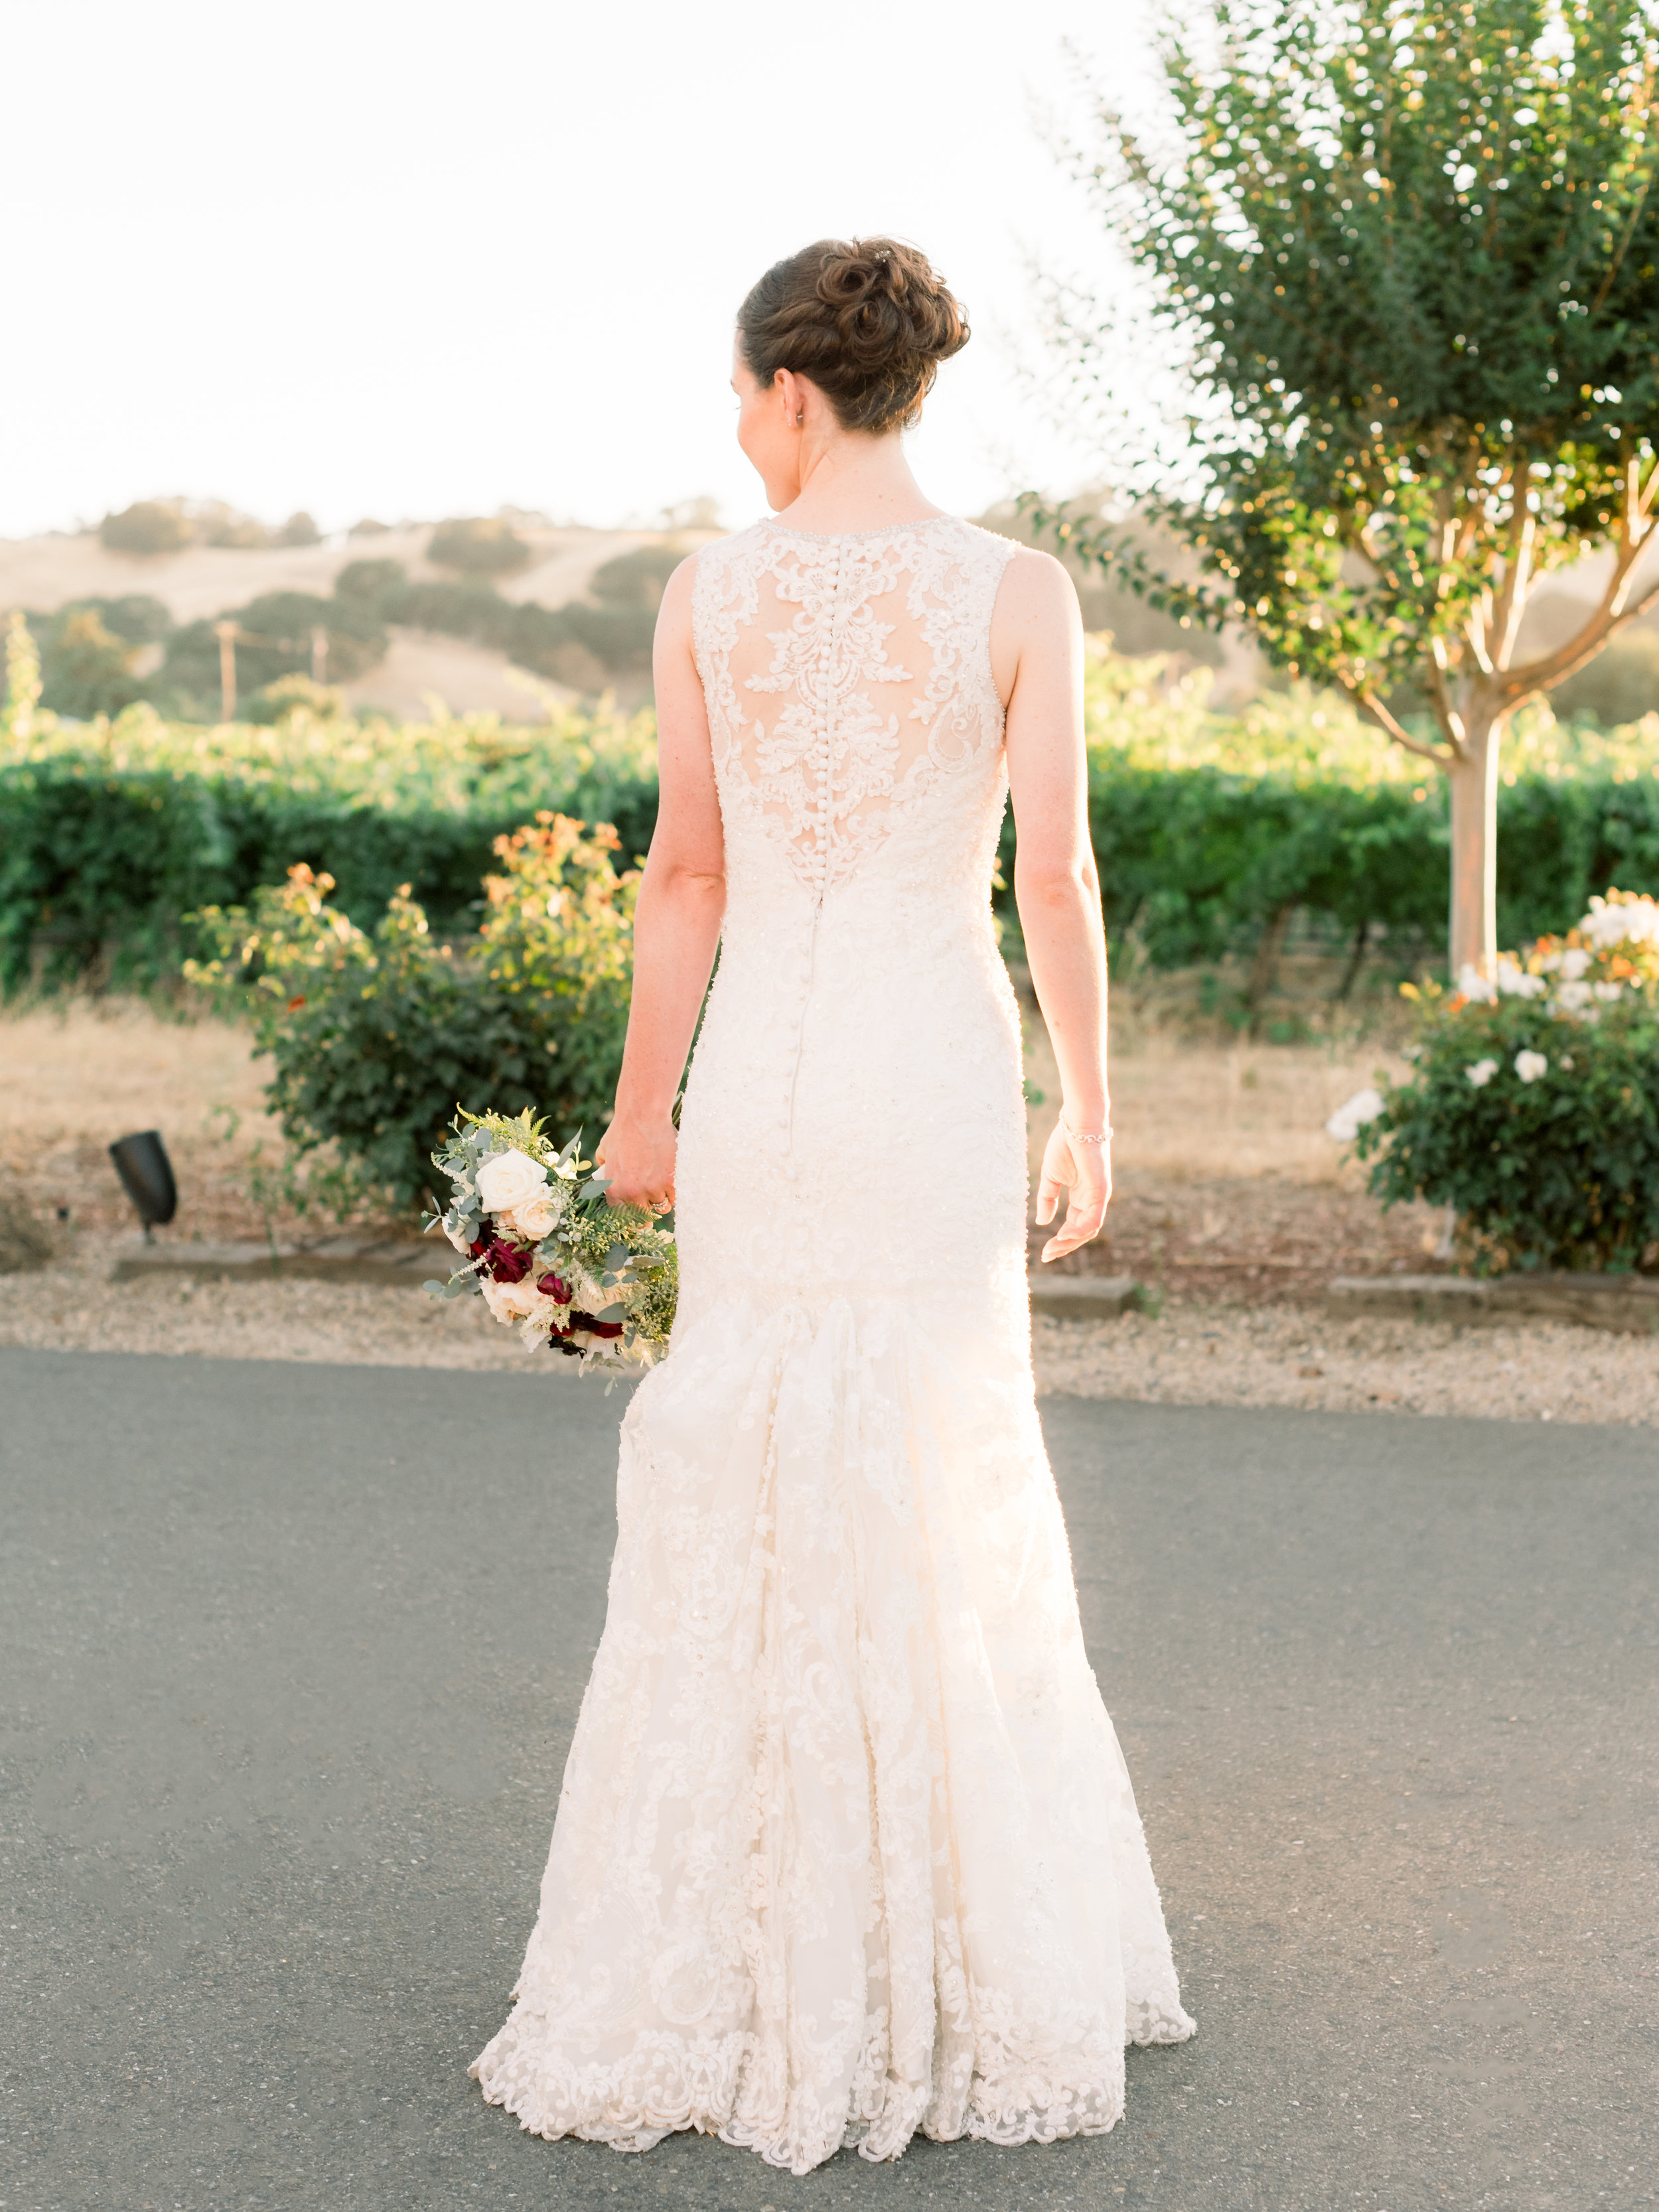 portrait-of-the-bride-in-the-sunset.jpg